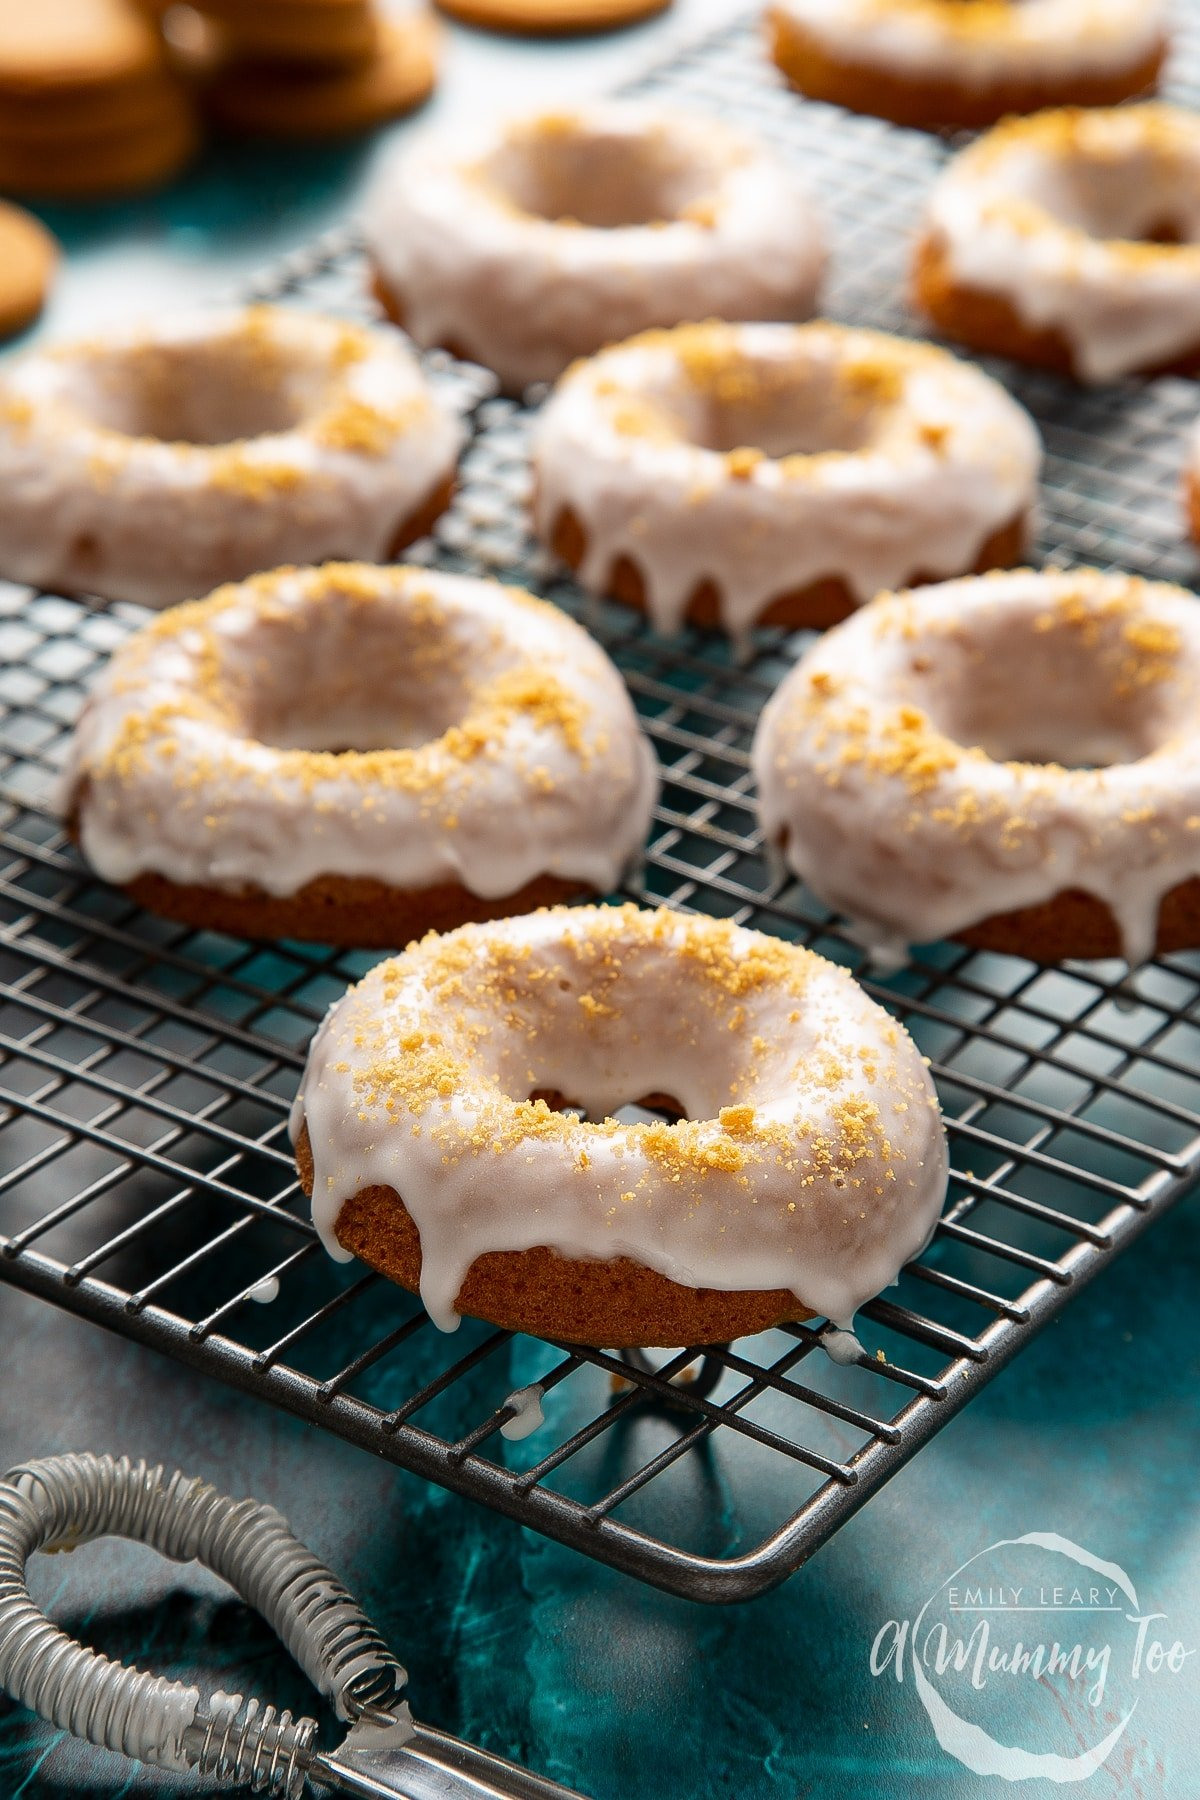 Baked gingerbread donuts, dipped in a lemon glaze on a wire cooling rack.